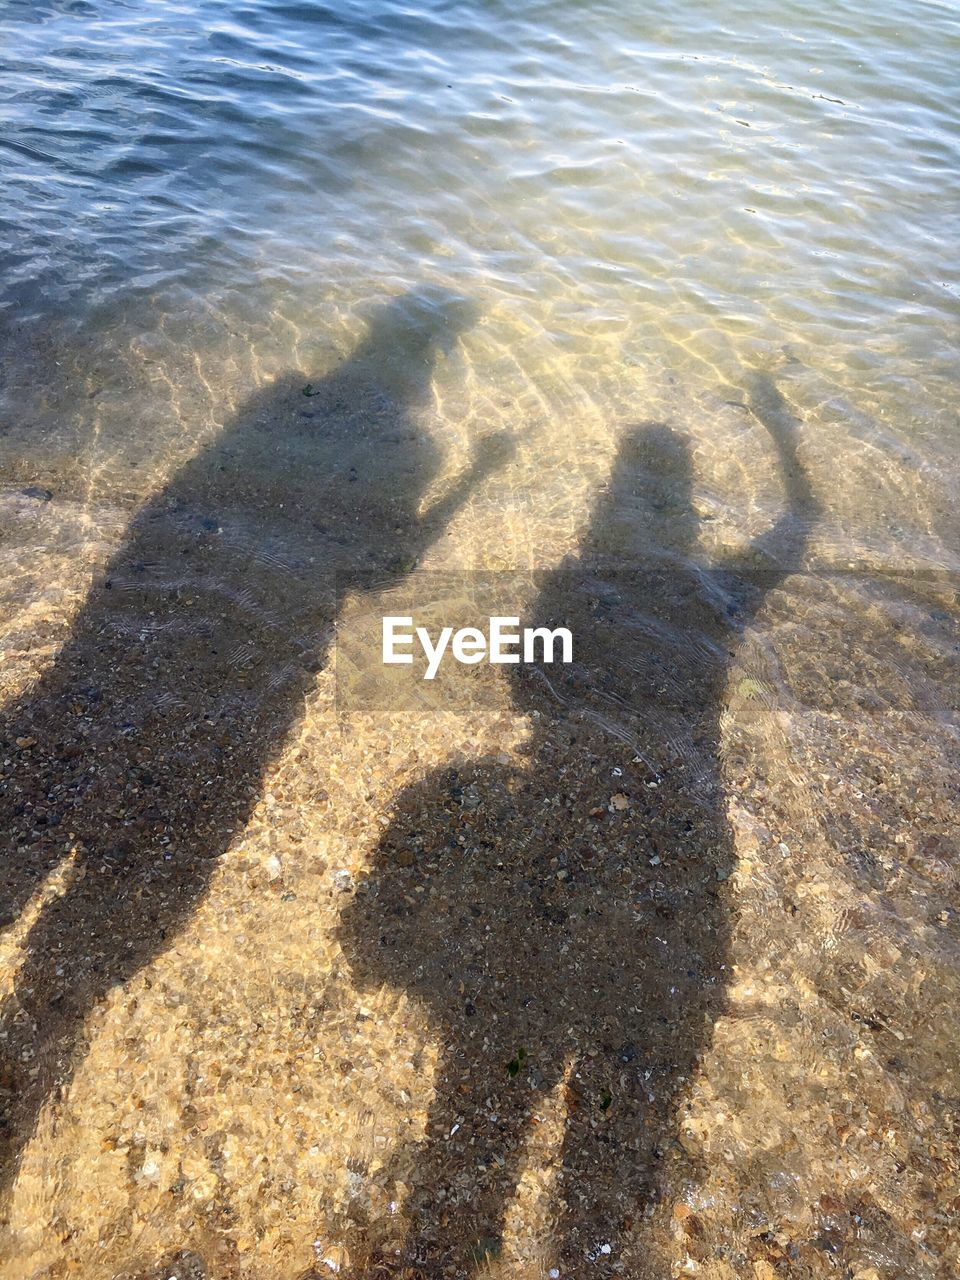 shadow, sunlight, focus on shadow, high angle view, outdoors, day, nature, real people, sand, standing, beach, water, one person, people